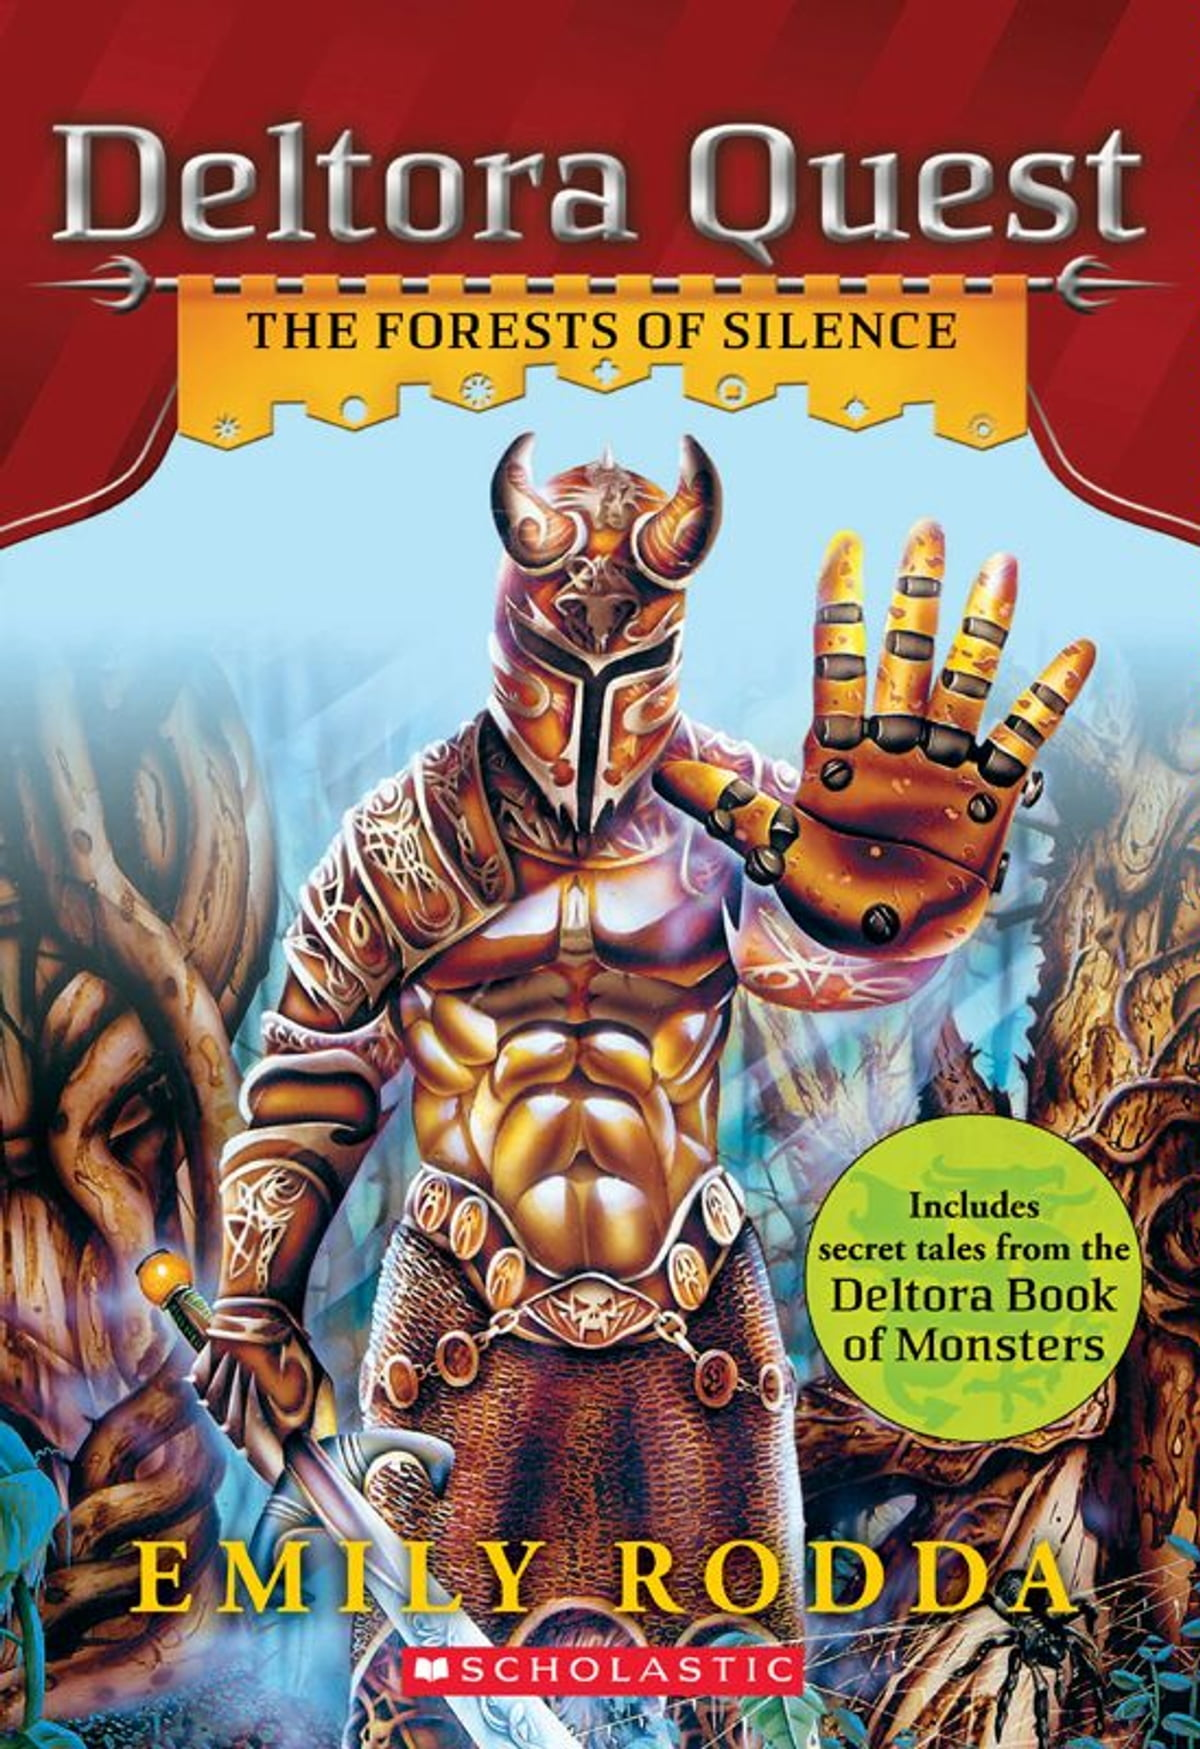 Deltora Quest #1: The Forests Of Silence Ebook By Emily Rodda   9780545529532  Rakuten Kobo